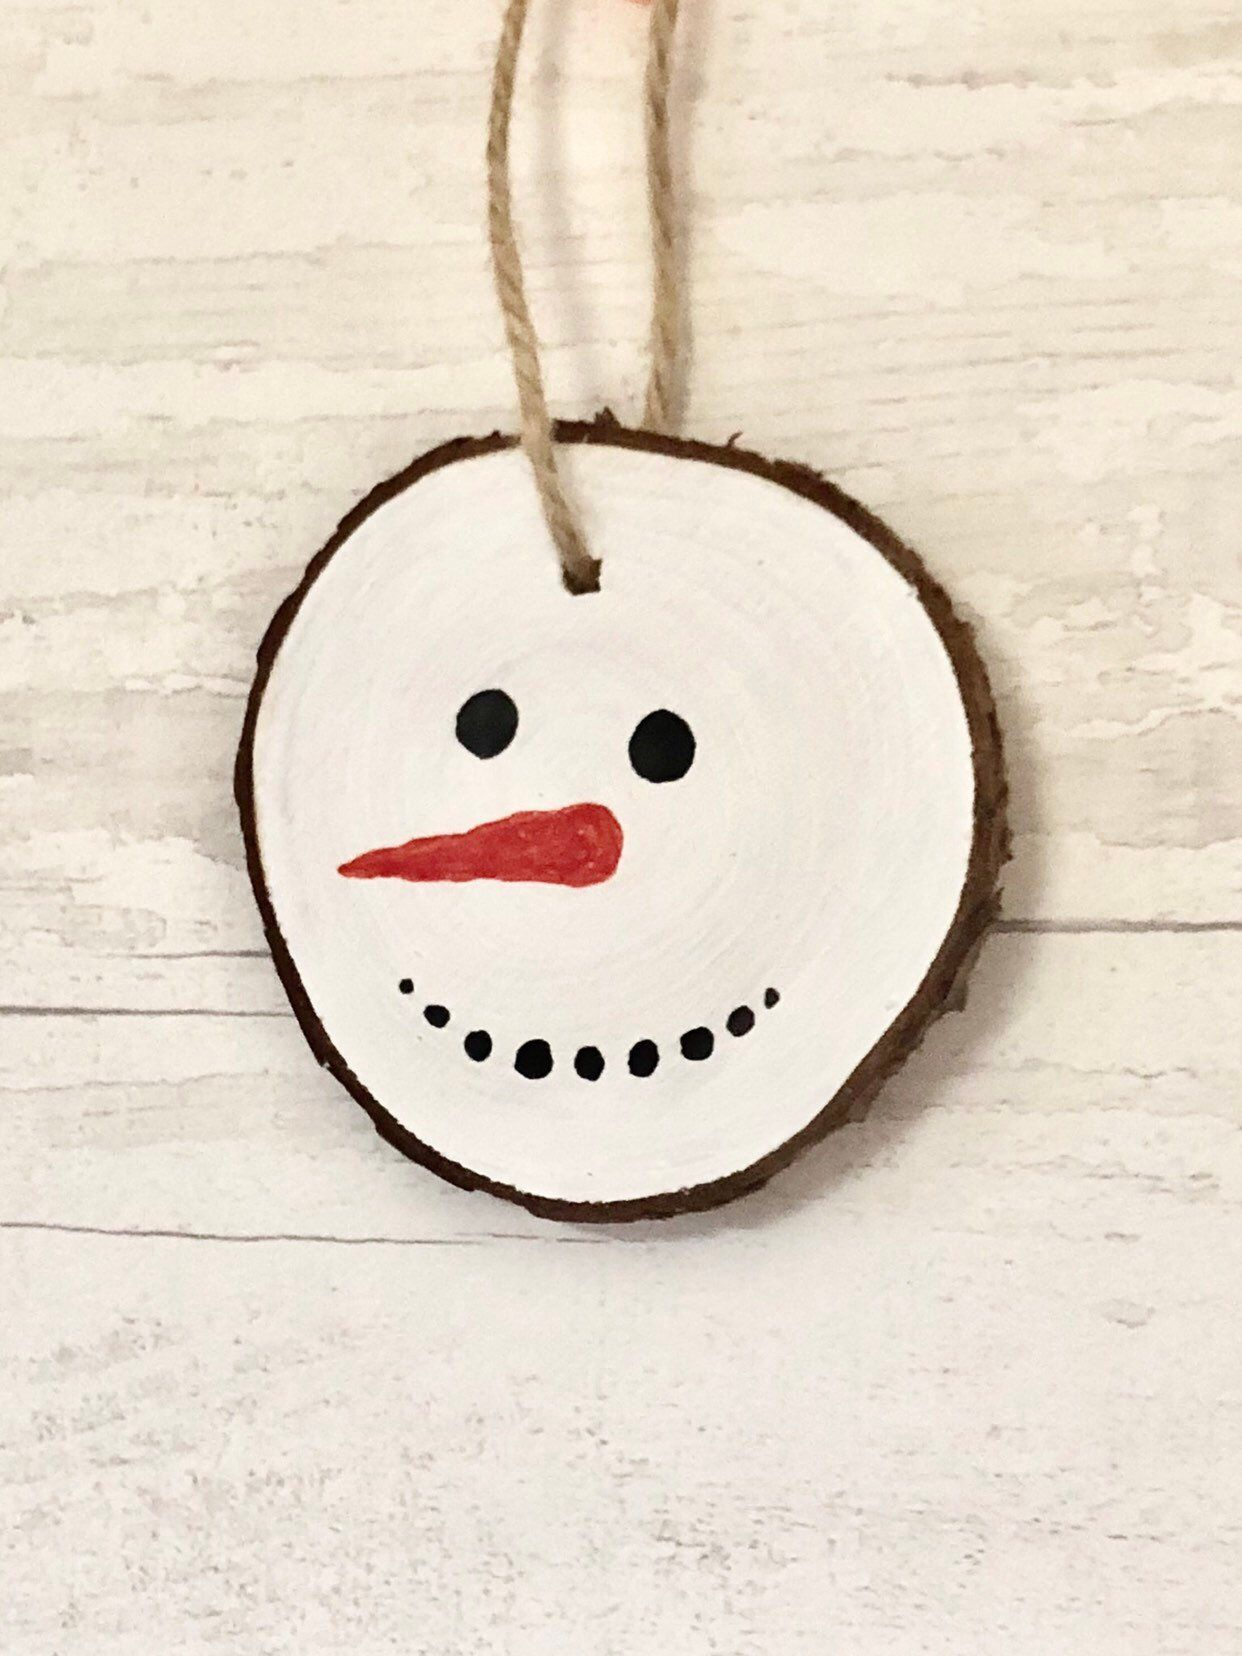 Pin By Glitter Magic Illustration On Glitter Magic Wood Slices Christmas Log Snowman Faces